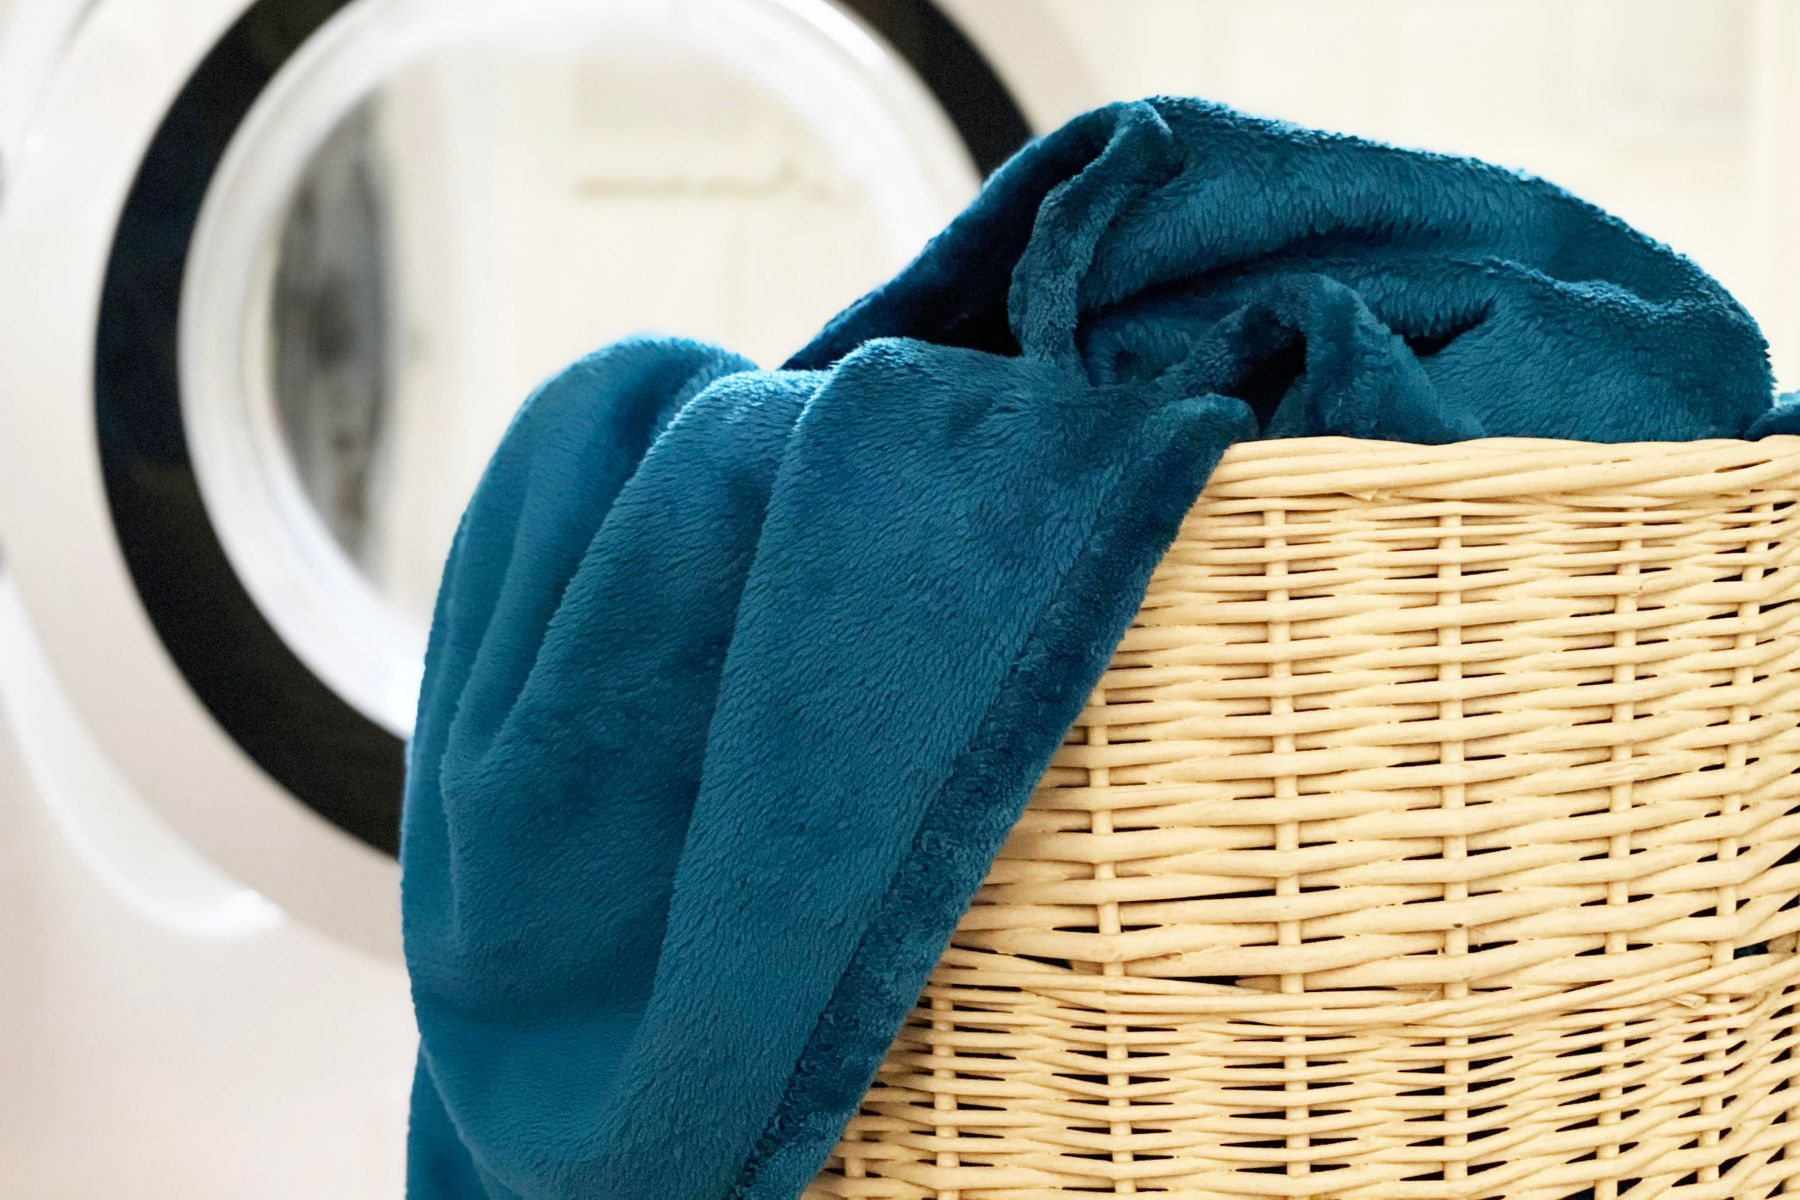 Throw blanket in a basket